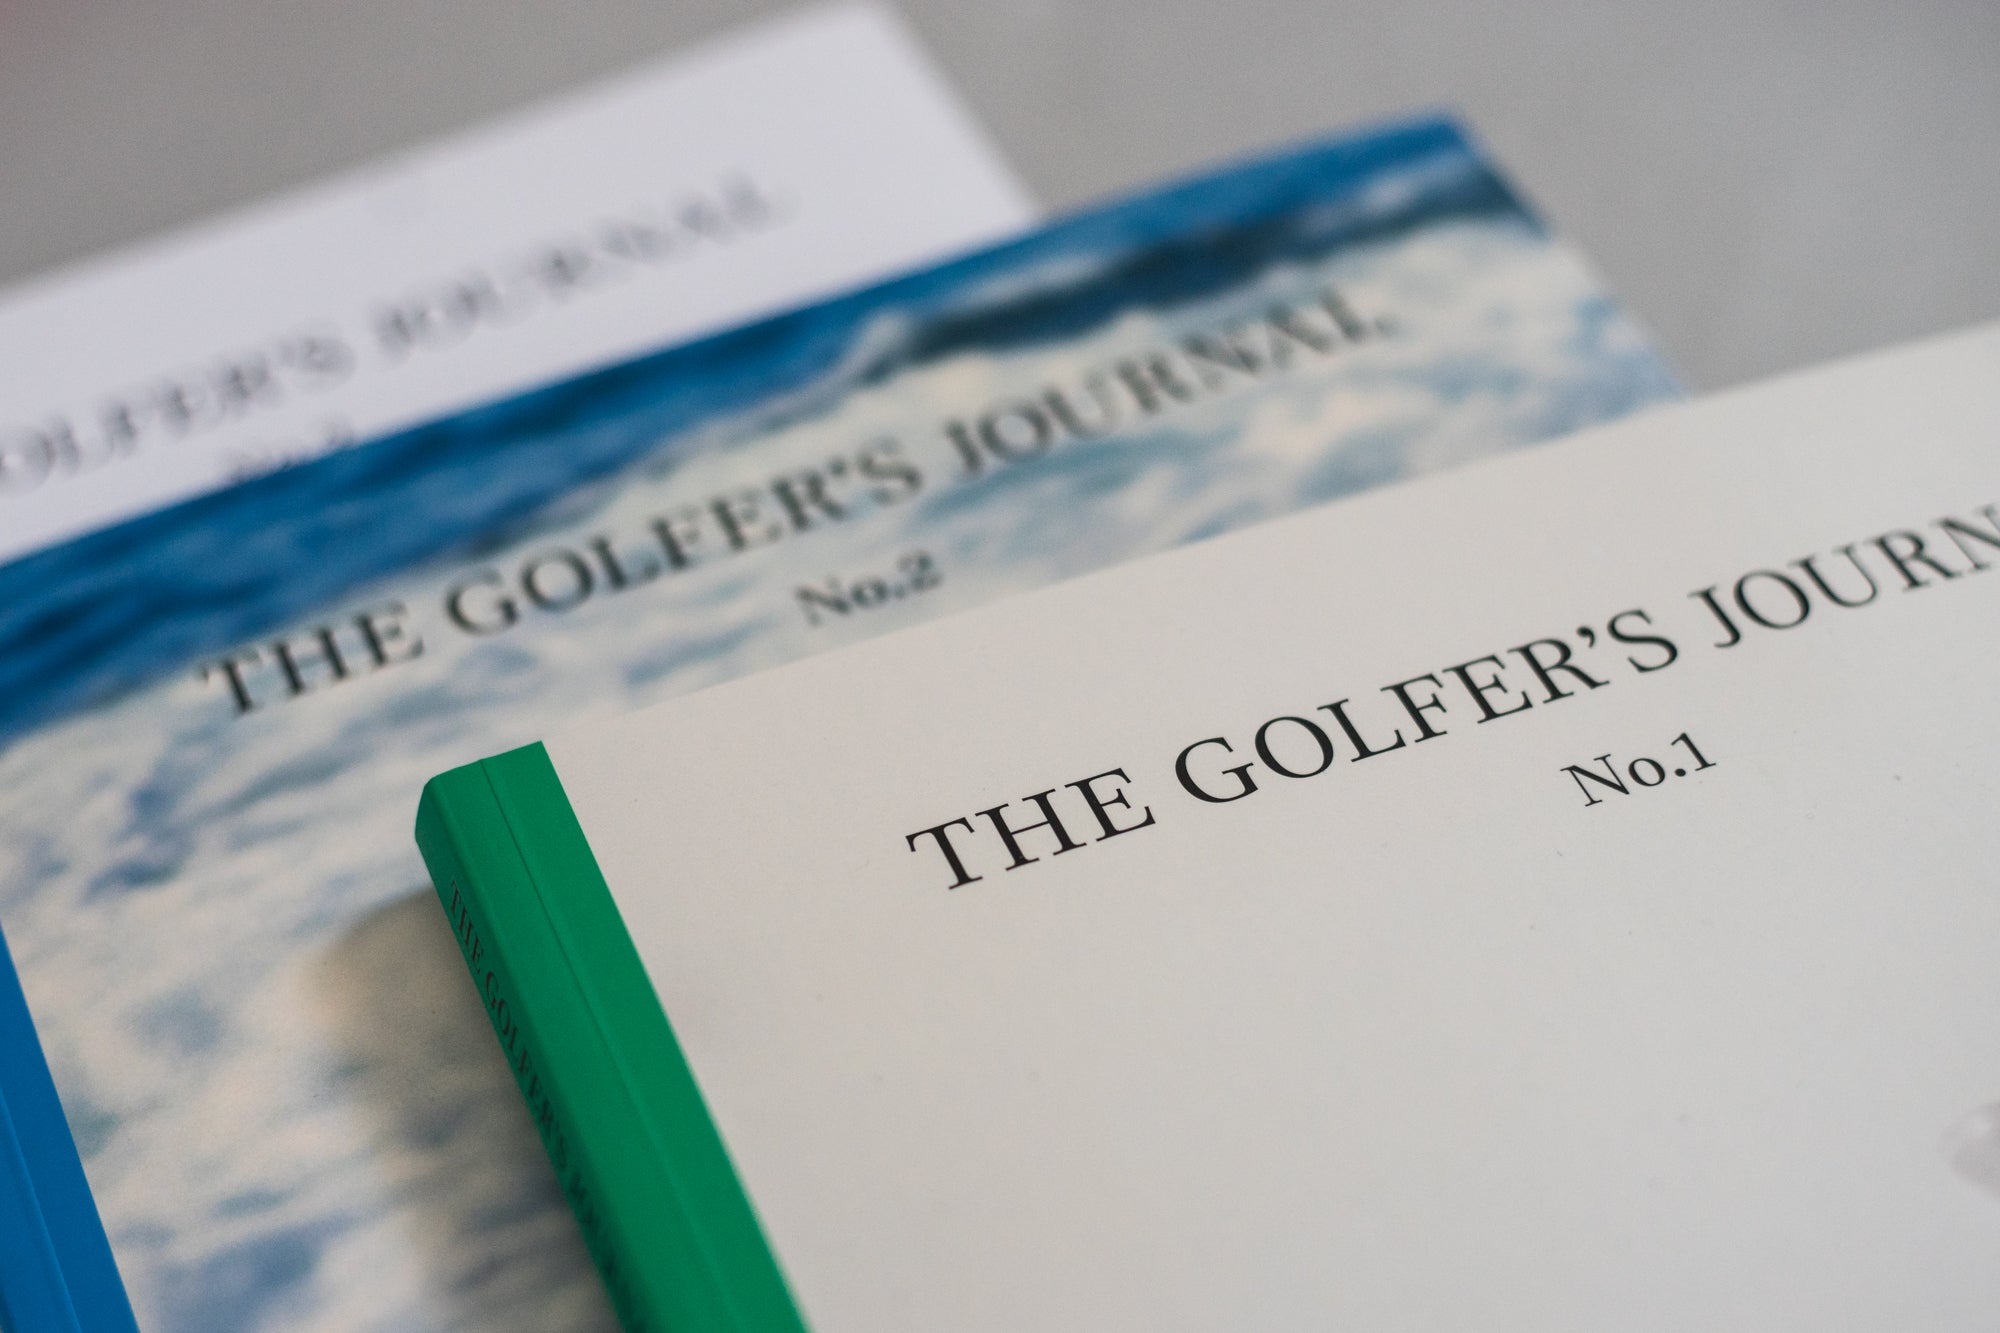 The Golfer's Journal Issues 1 to 3